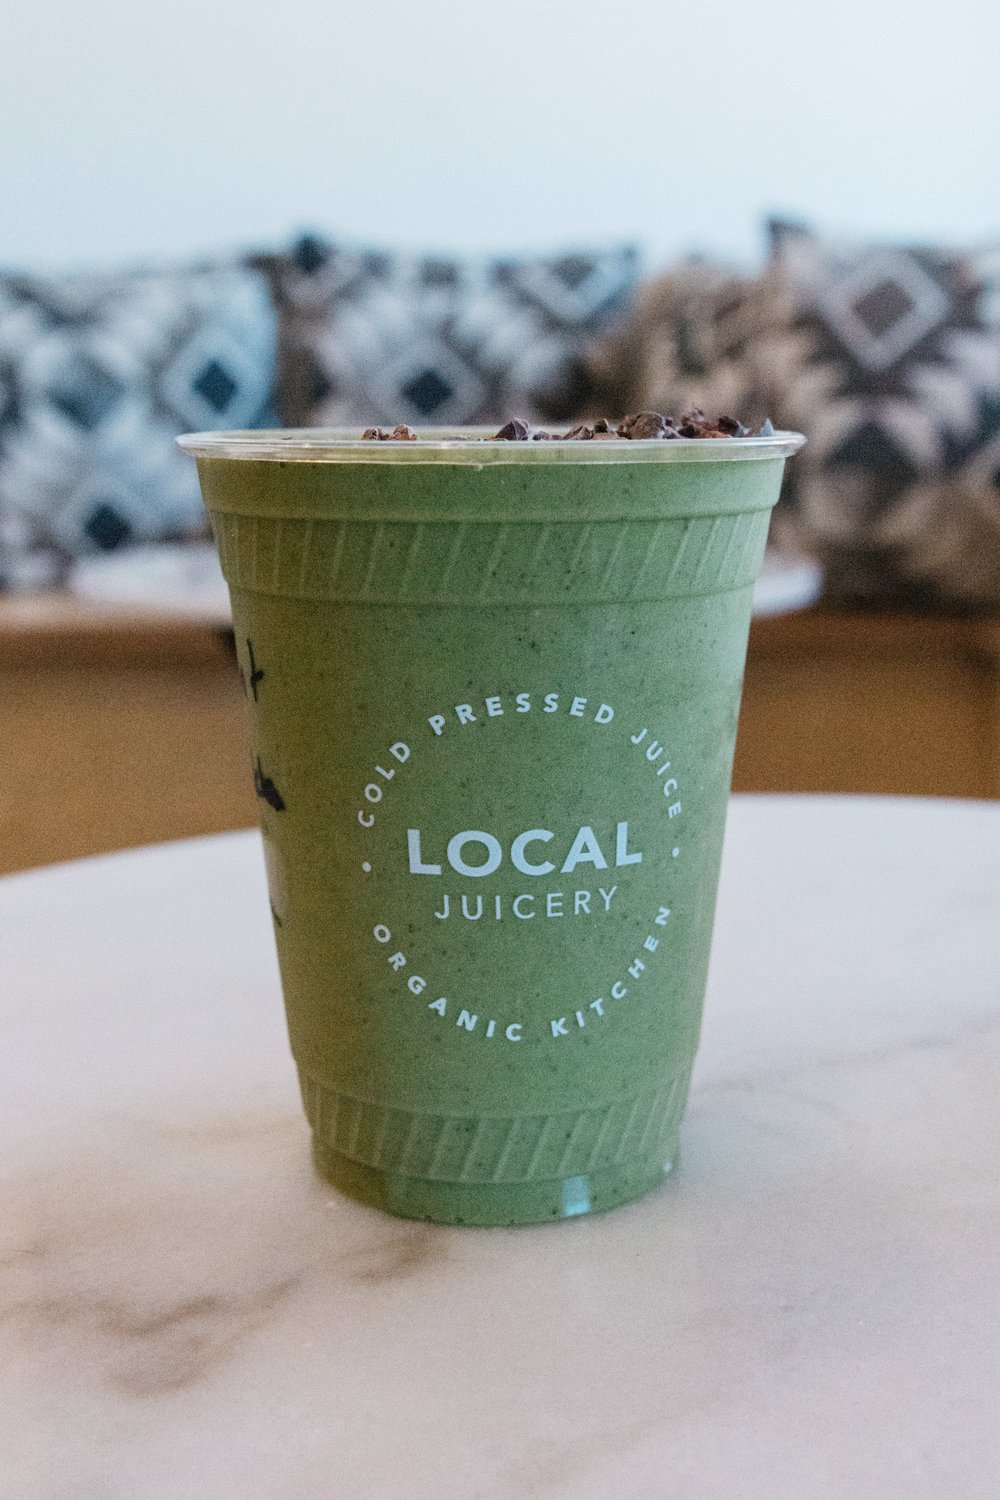 Matcha mint smoothie at Local Juicery